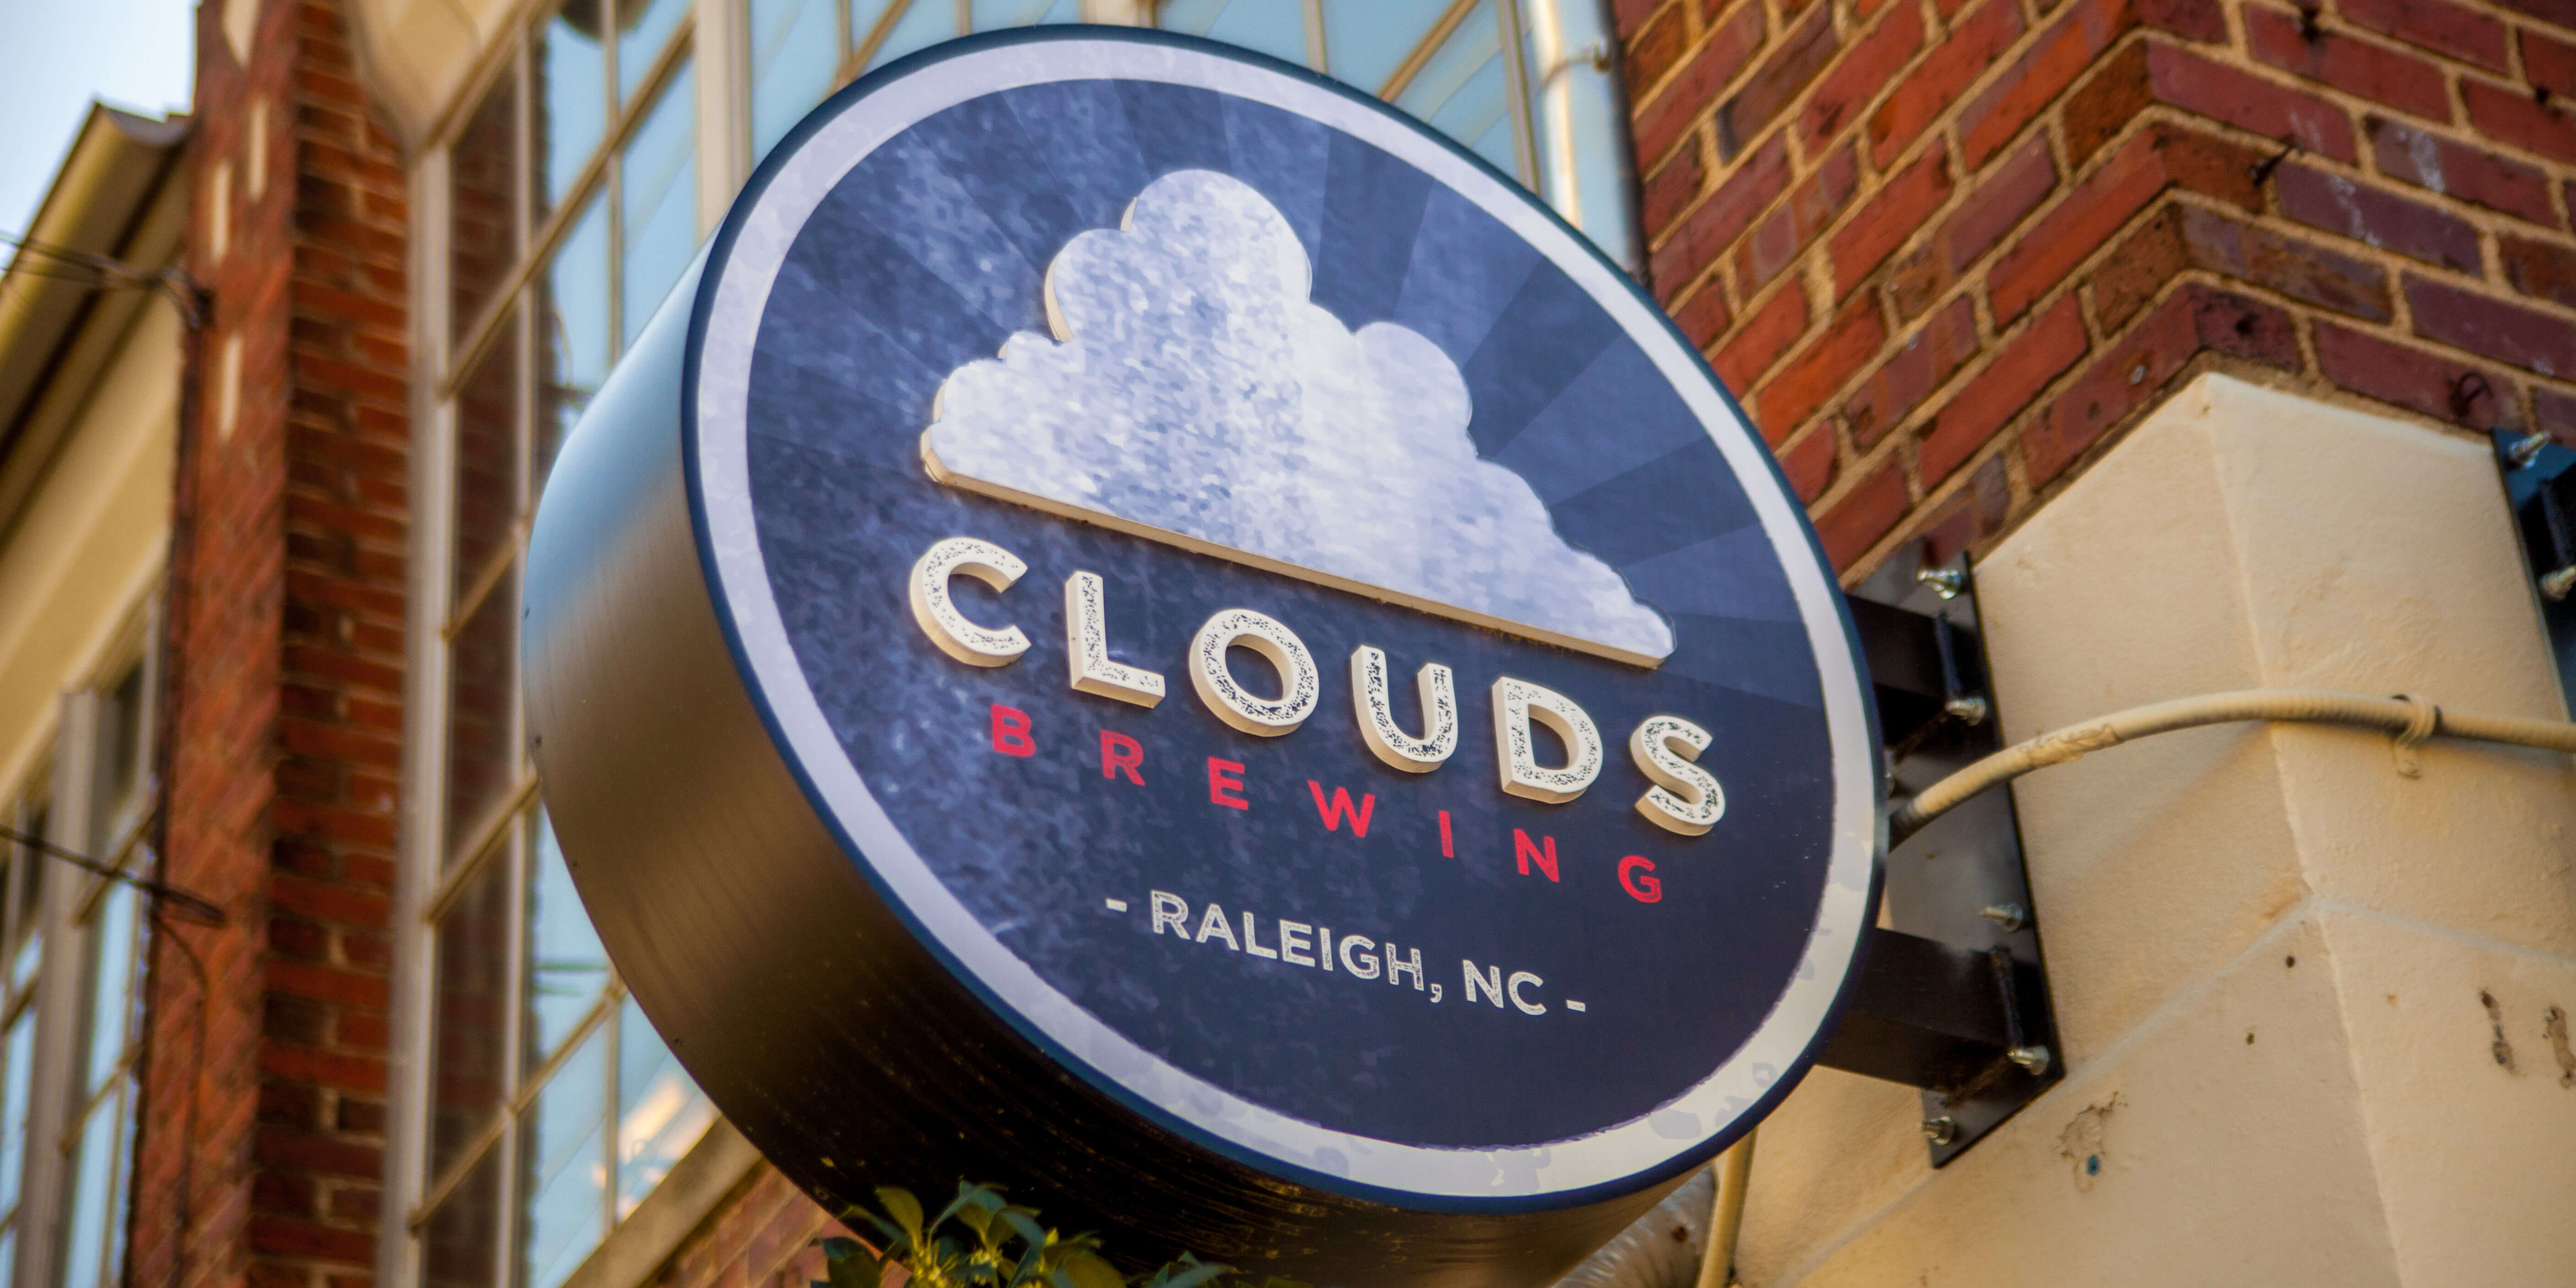 Sign at the front entrance of Clouds Brewing in downtown Raleigh, North Carolina